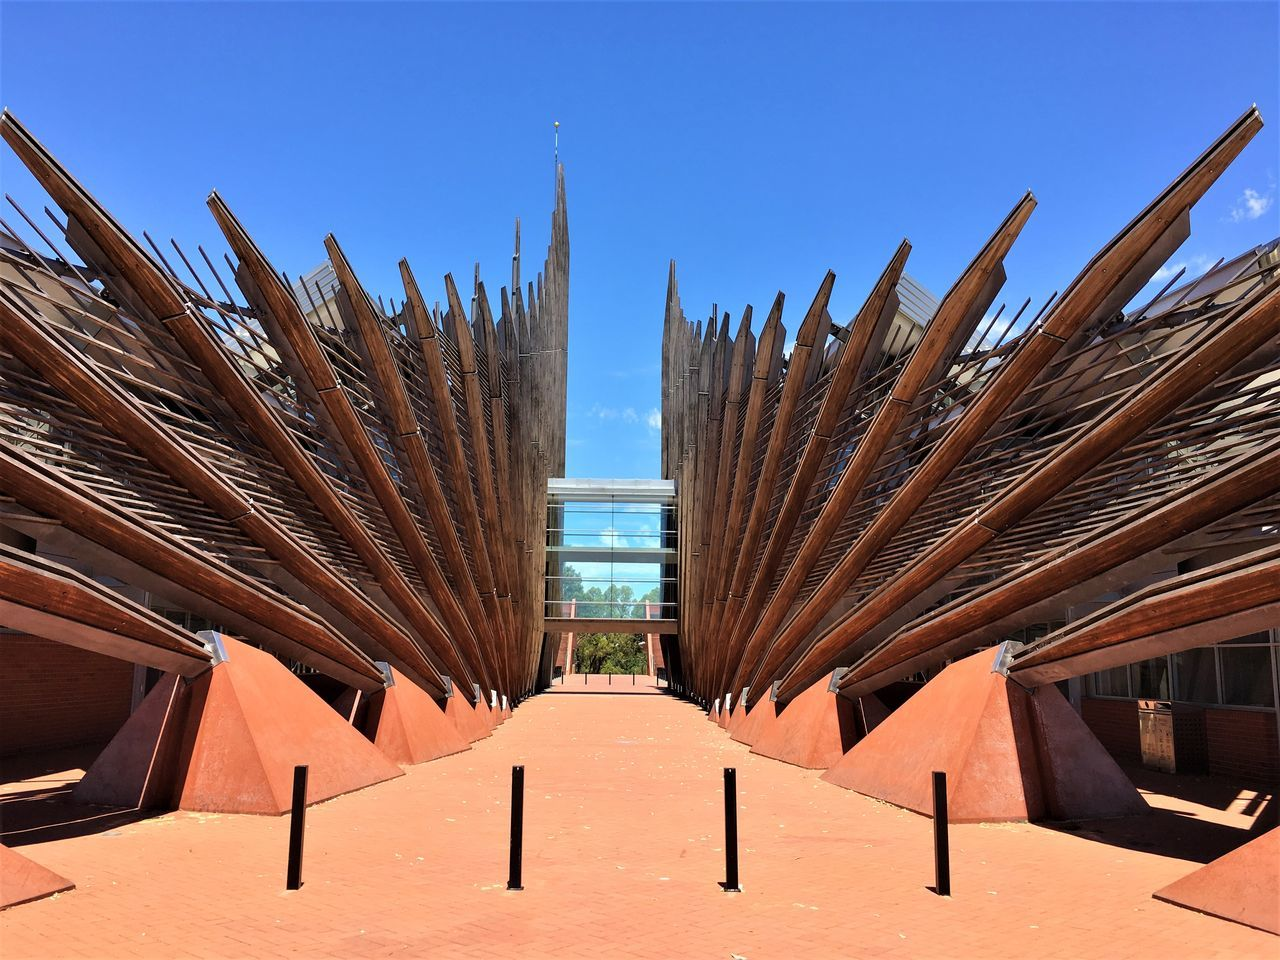 Abstract Abstract Photography Abstractarchitecture Architecture Architecture Architecture_collection Blue Building Built Structure Business Finance And Industry City City Day Edith Cowan University EyeEm EyeEm Gallery Hello World Igniting No People Outdoors Sky Travel Destinations University Campus Urban Urban Geometry Minimalist Architecture The Architect - 2017 EyeEm Awards